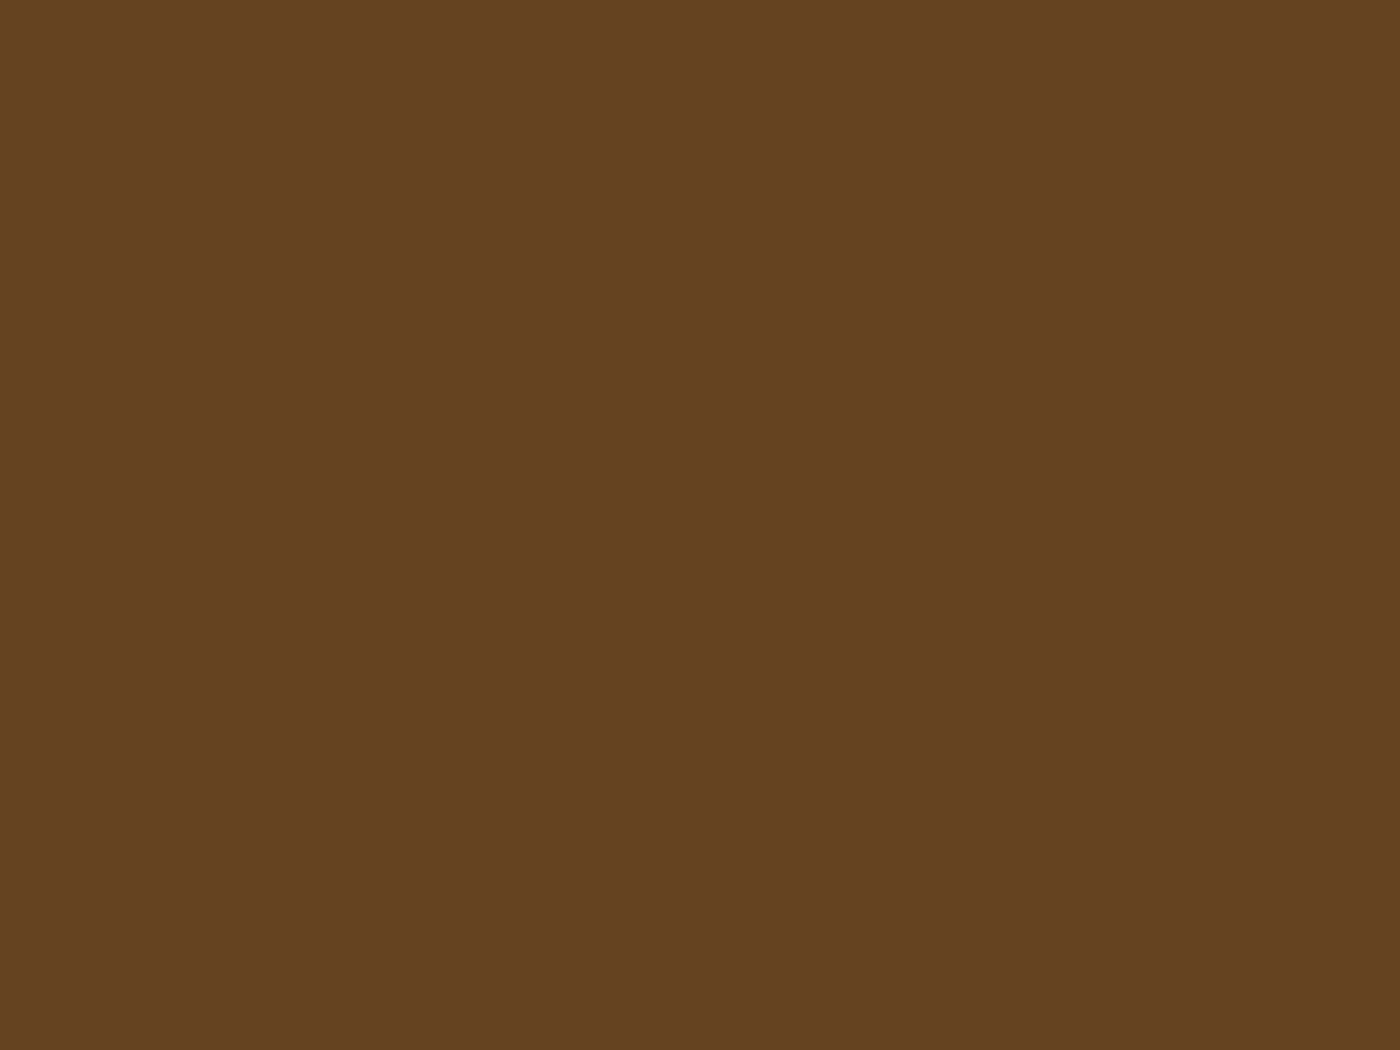 1400x1050 Otter Brown Solid Color Background